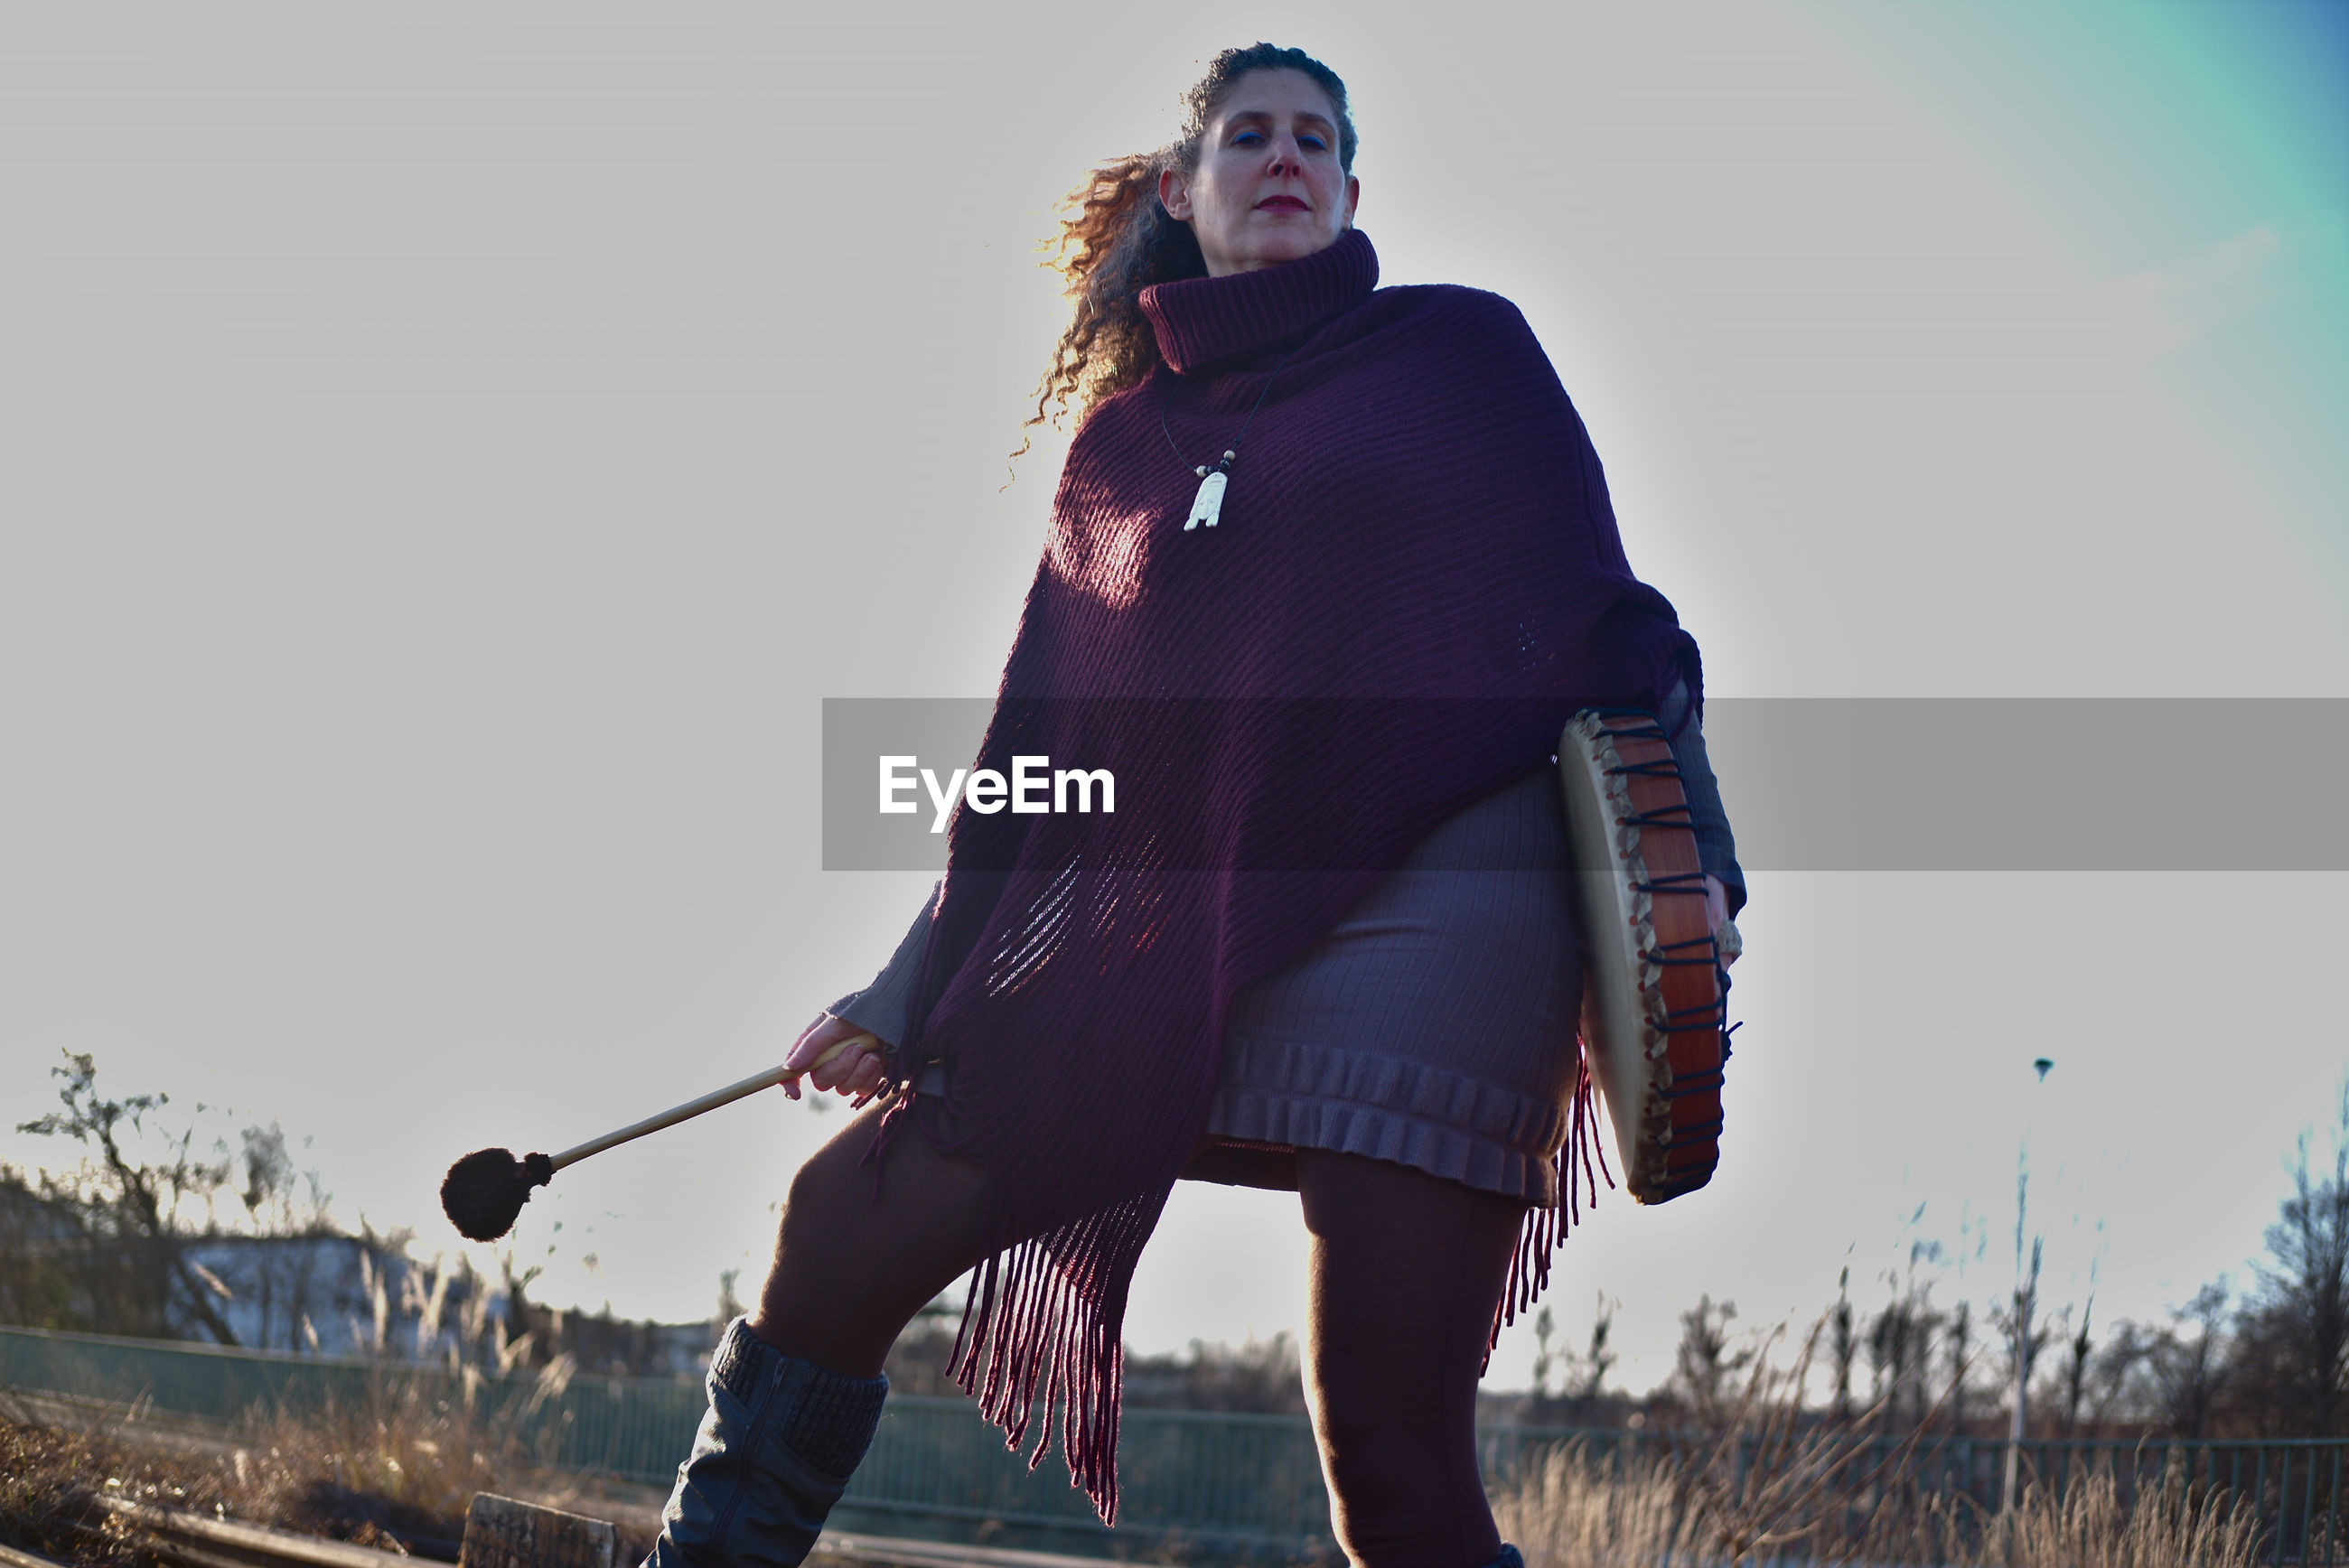 Low angle view of woman holding musical instrument standing against sky